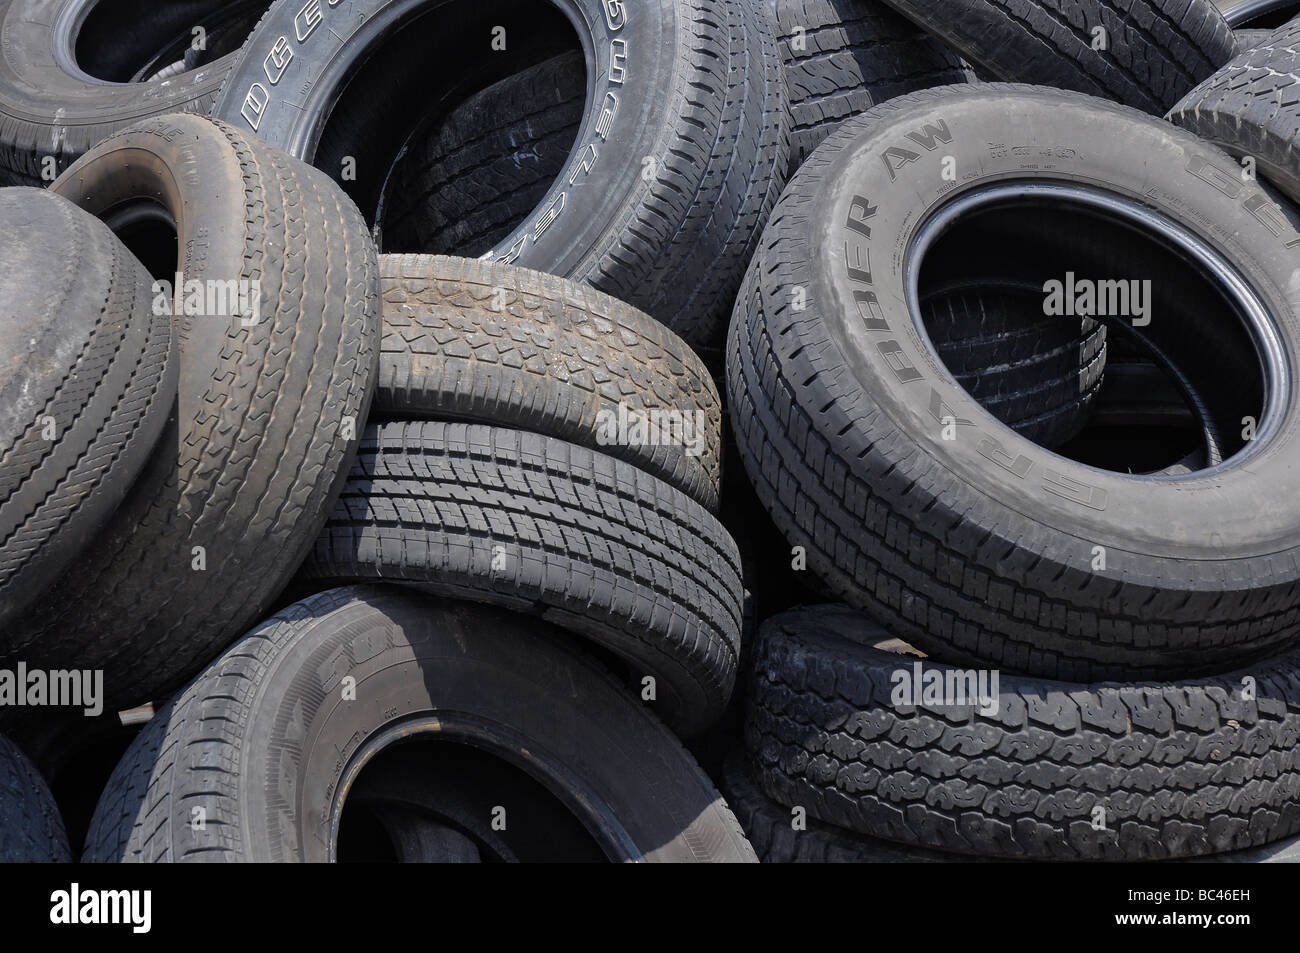 A pile of worn used tires sits in back of  an auto repair shop, Florida. - Stock Image